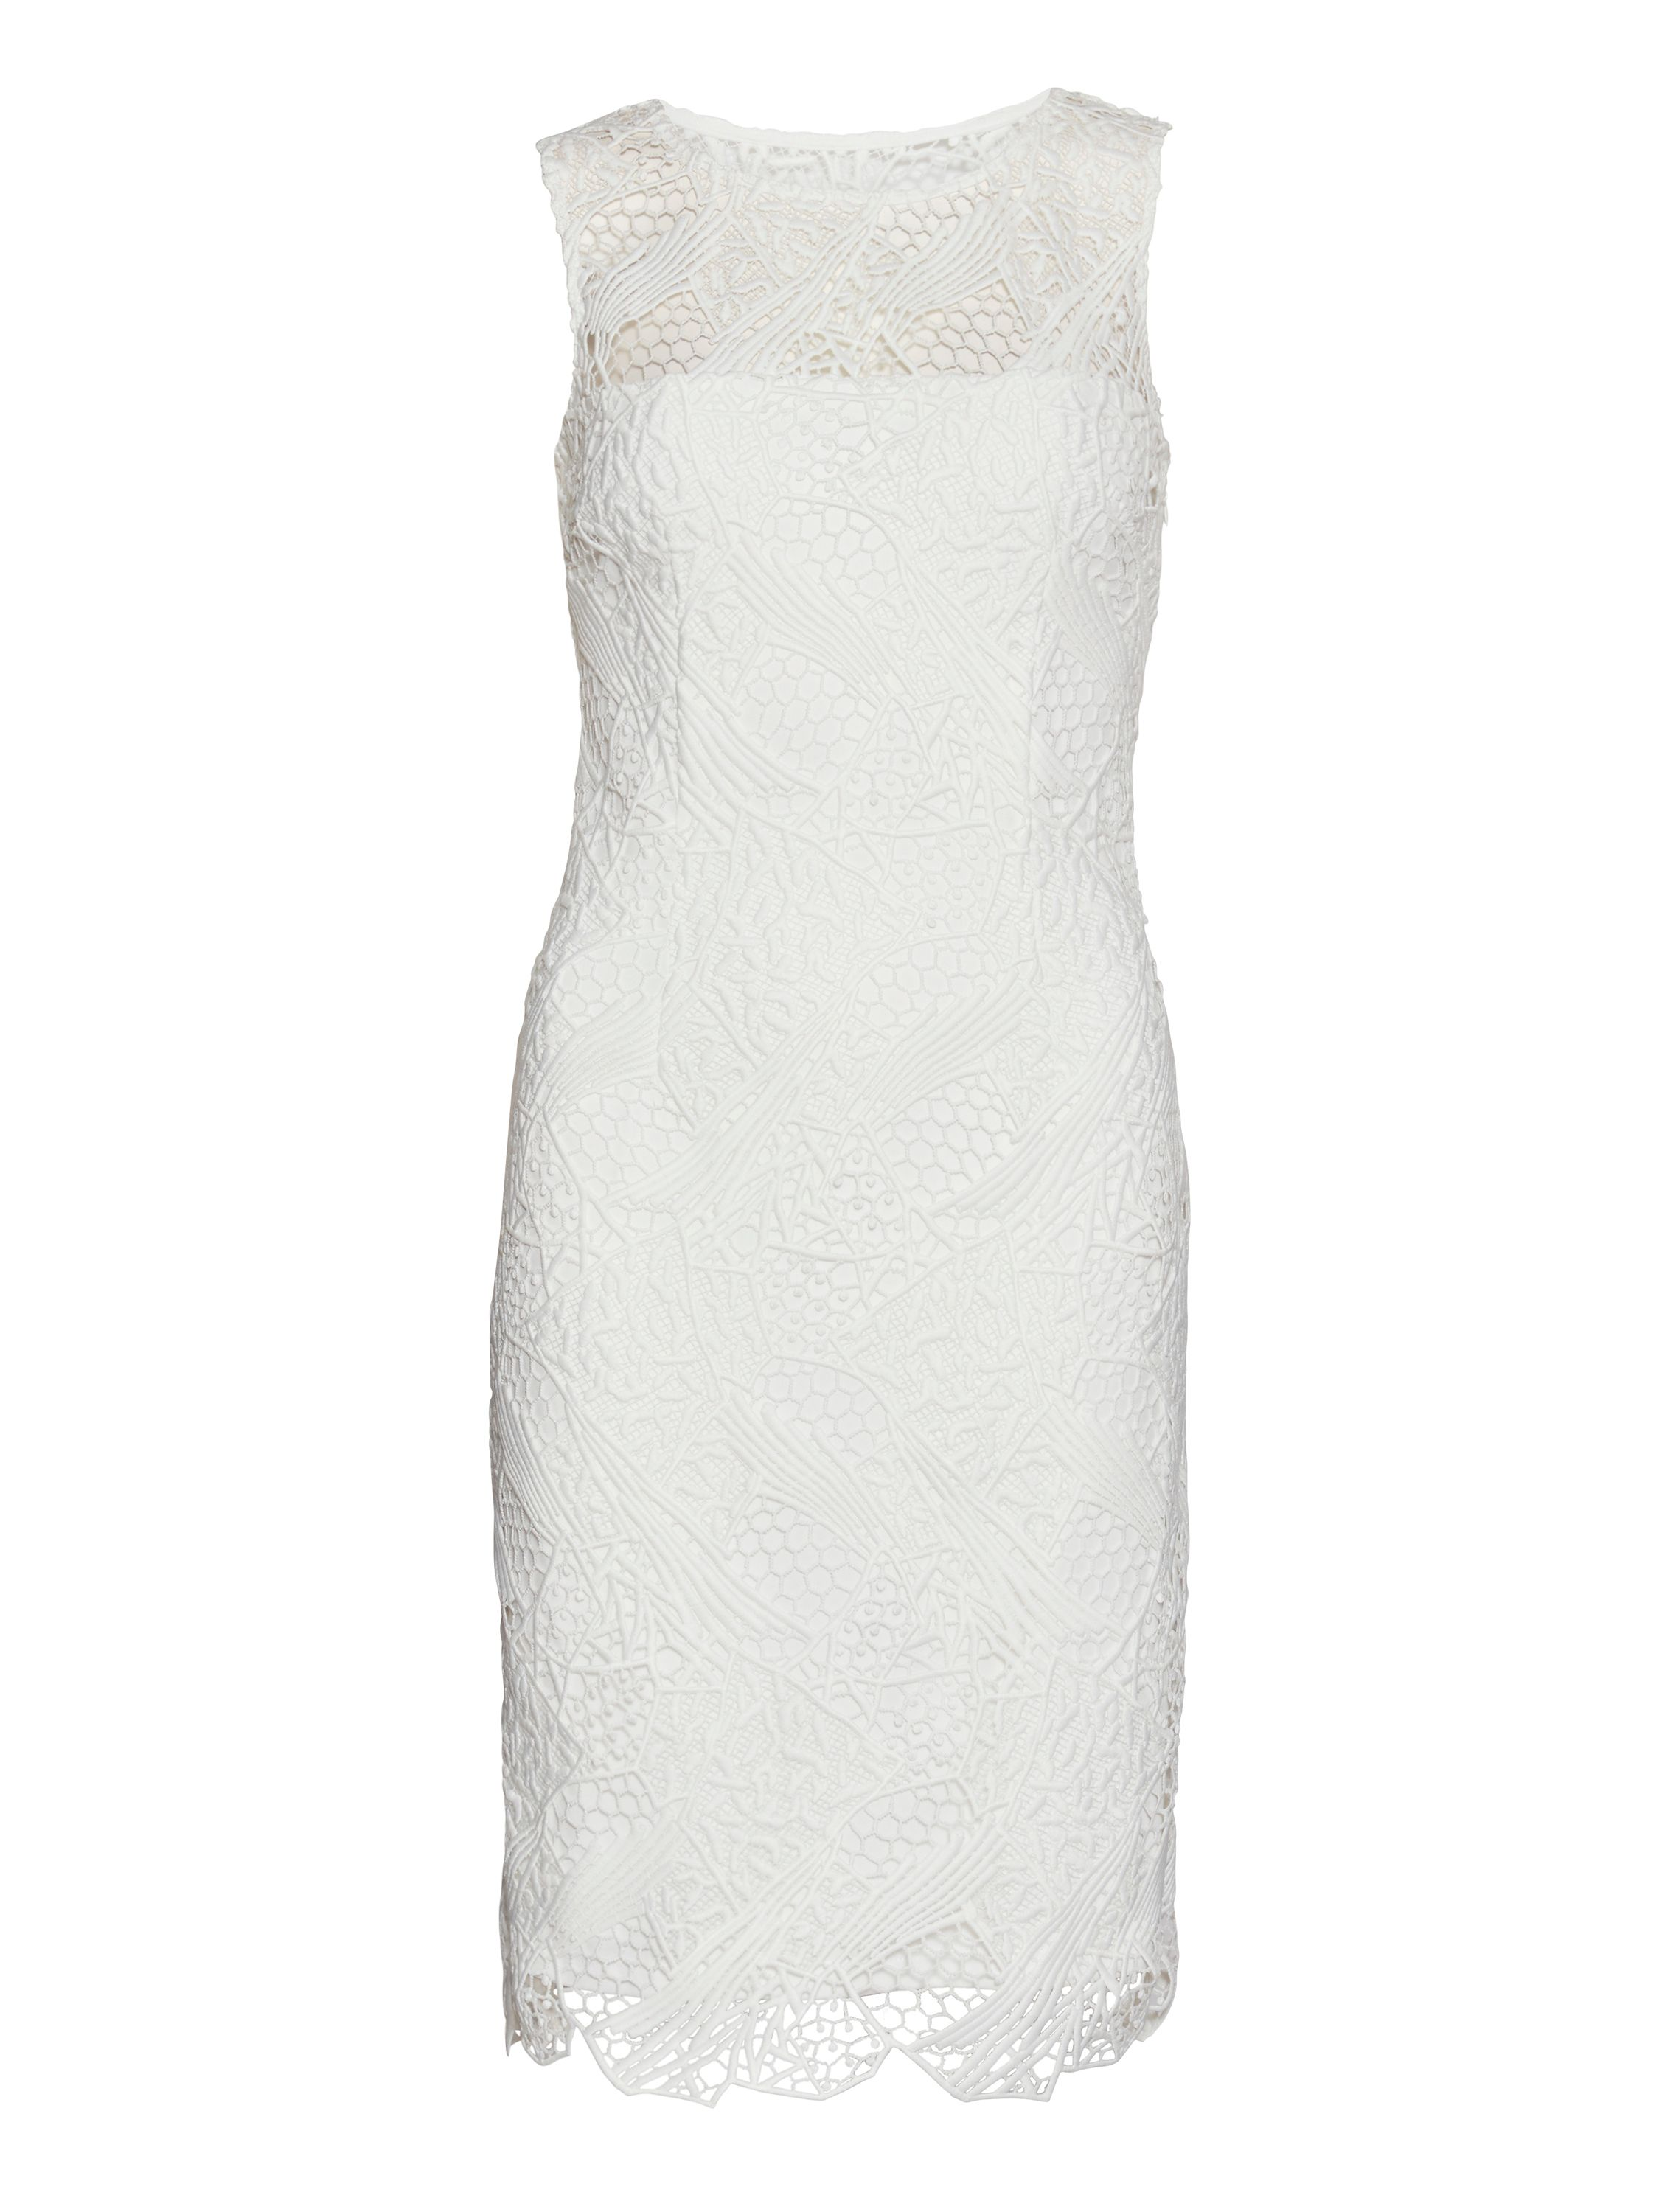 Gina Bacconi Abstract guipure dress, Cream